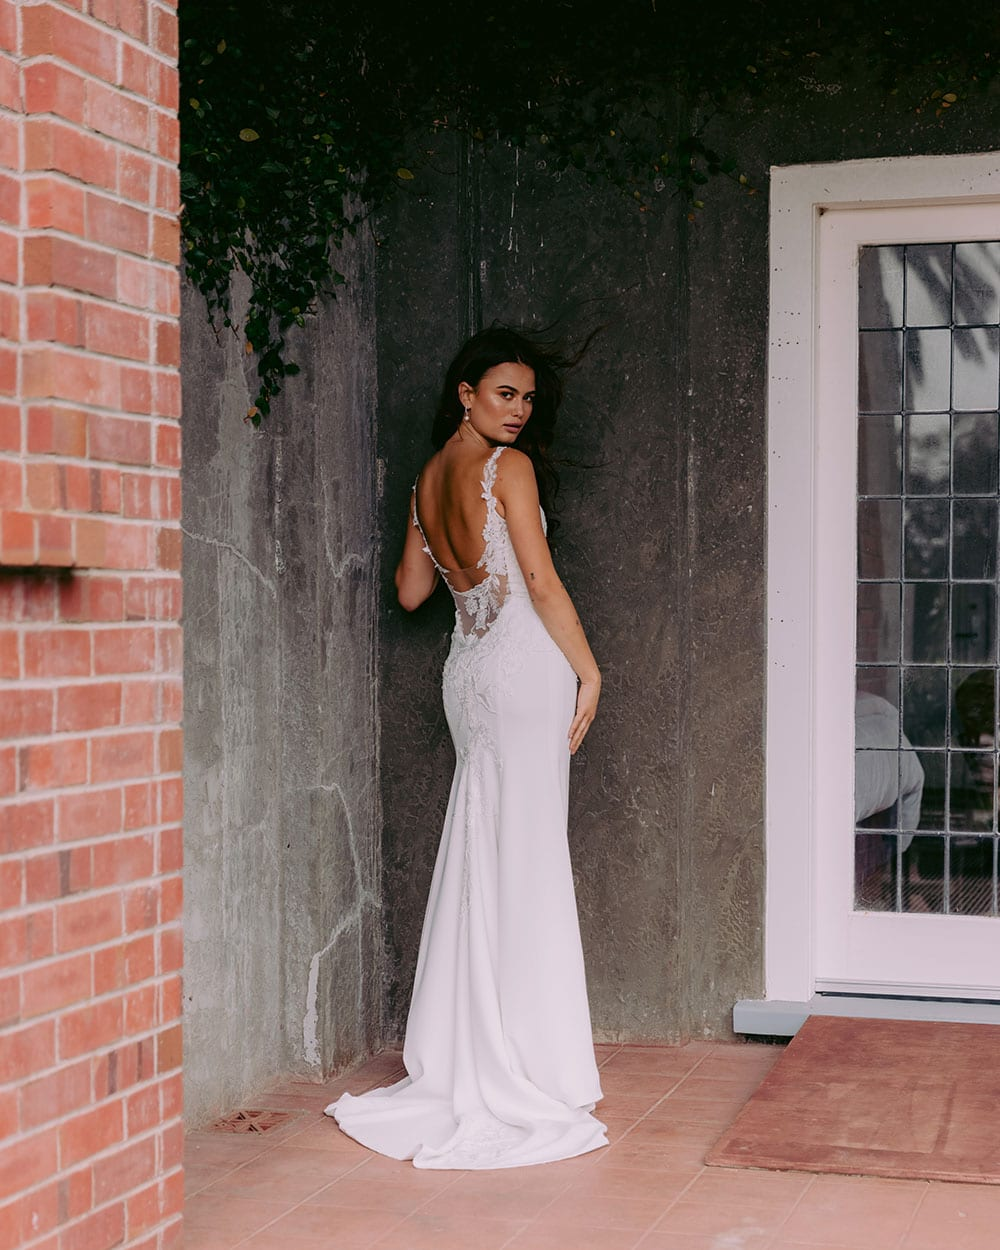 Ana Wedding gown from Vinka Design - This beautiful gown is graced by hand-appliqued delicate floral leaf lace, subtly worked into the front of the bodice and more prominently on the back. A fit-and-flare cut shapes the figure. Model wearing gown showing low back and lace detail.